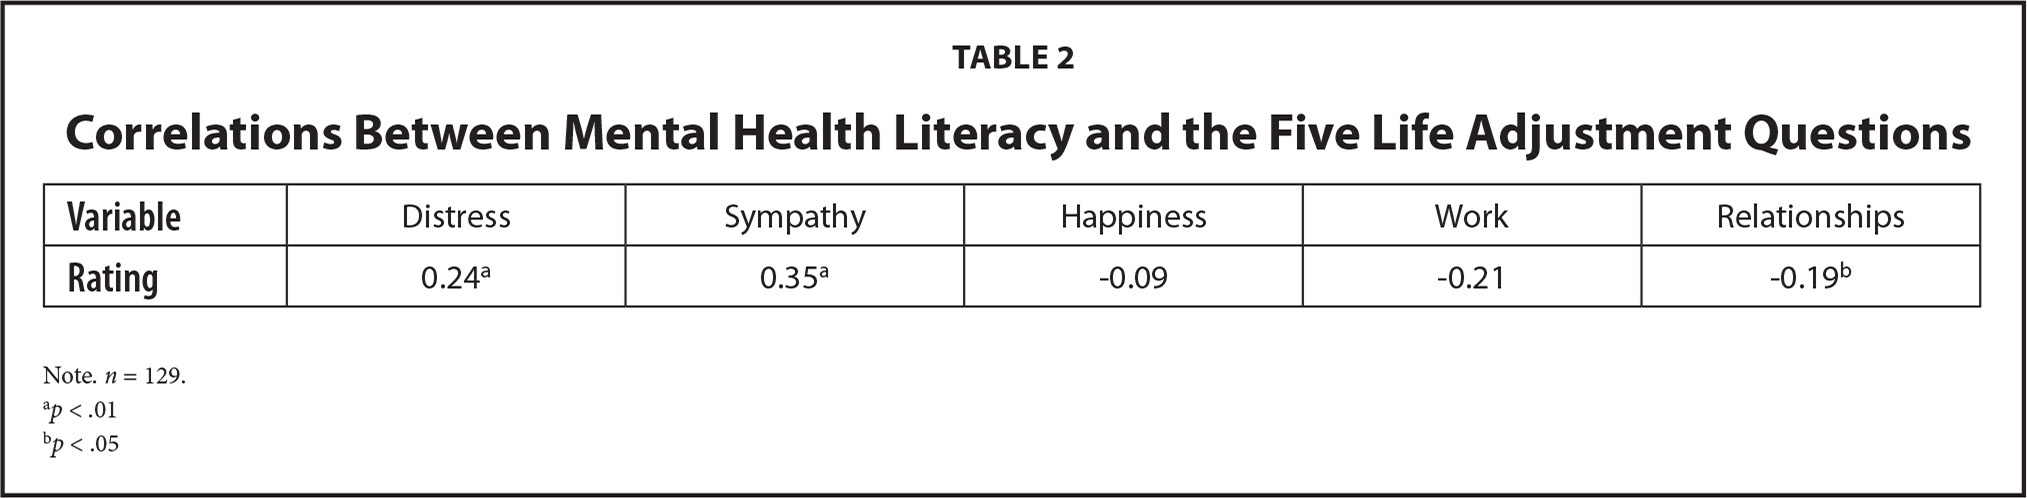 Correlations Between Mental Health Literacy and the Five Life Adjustment Questions